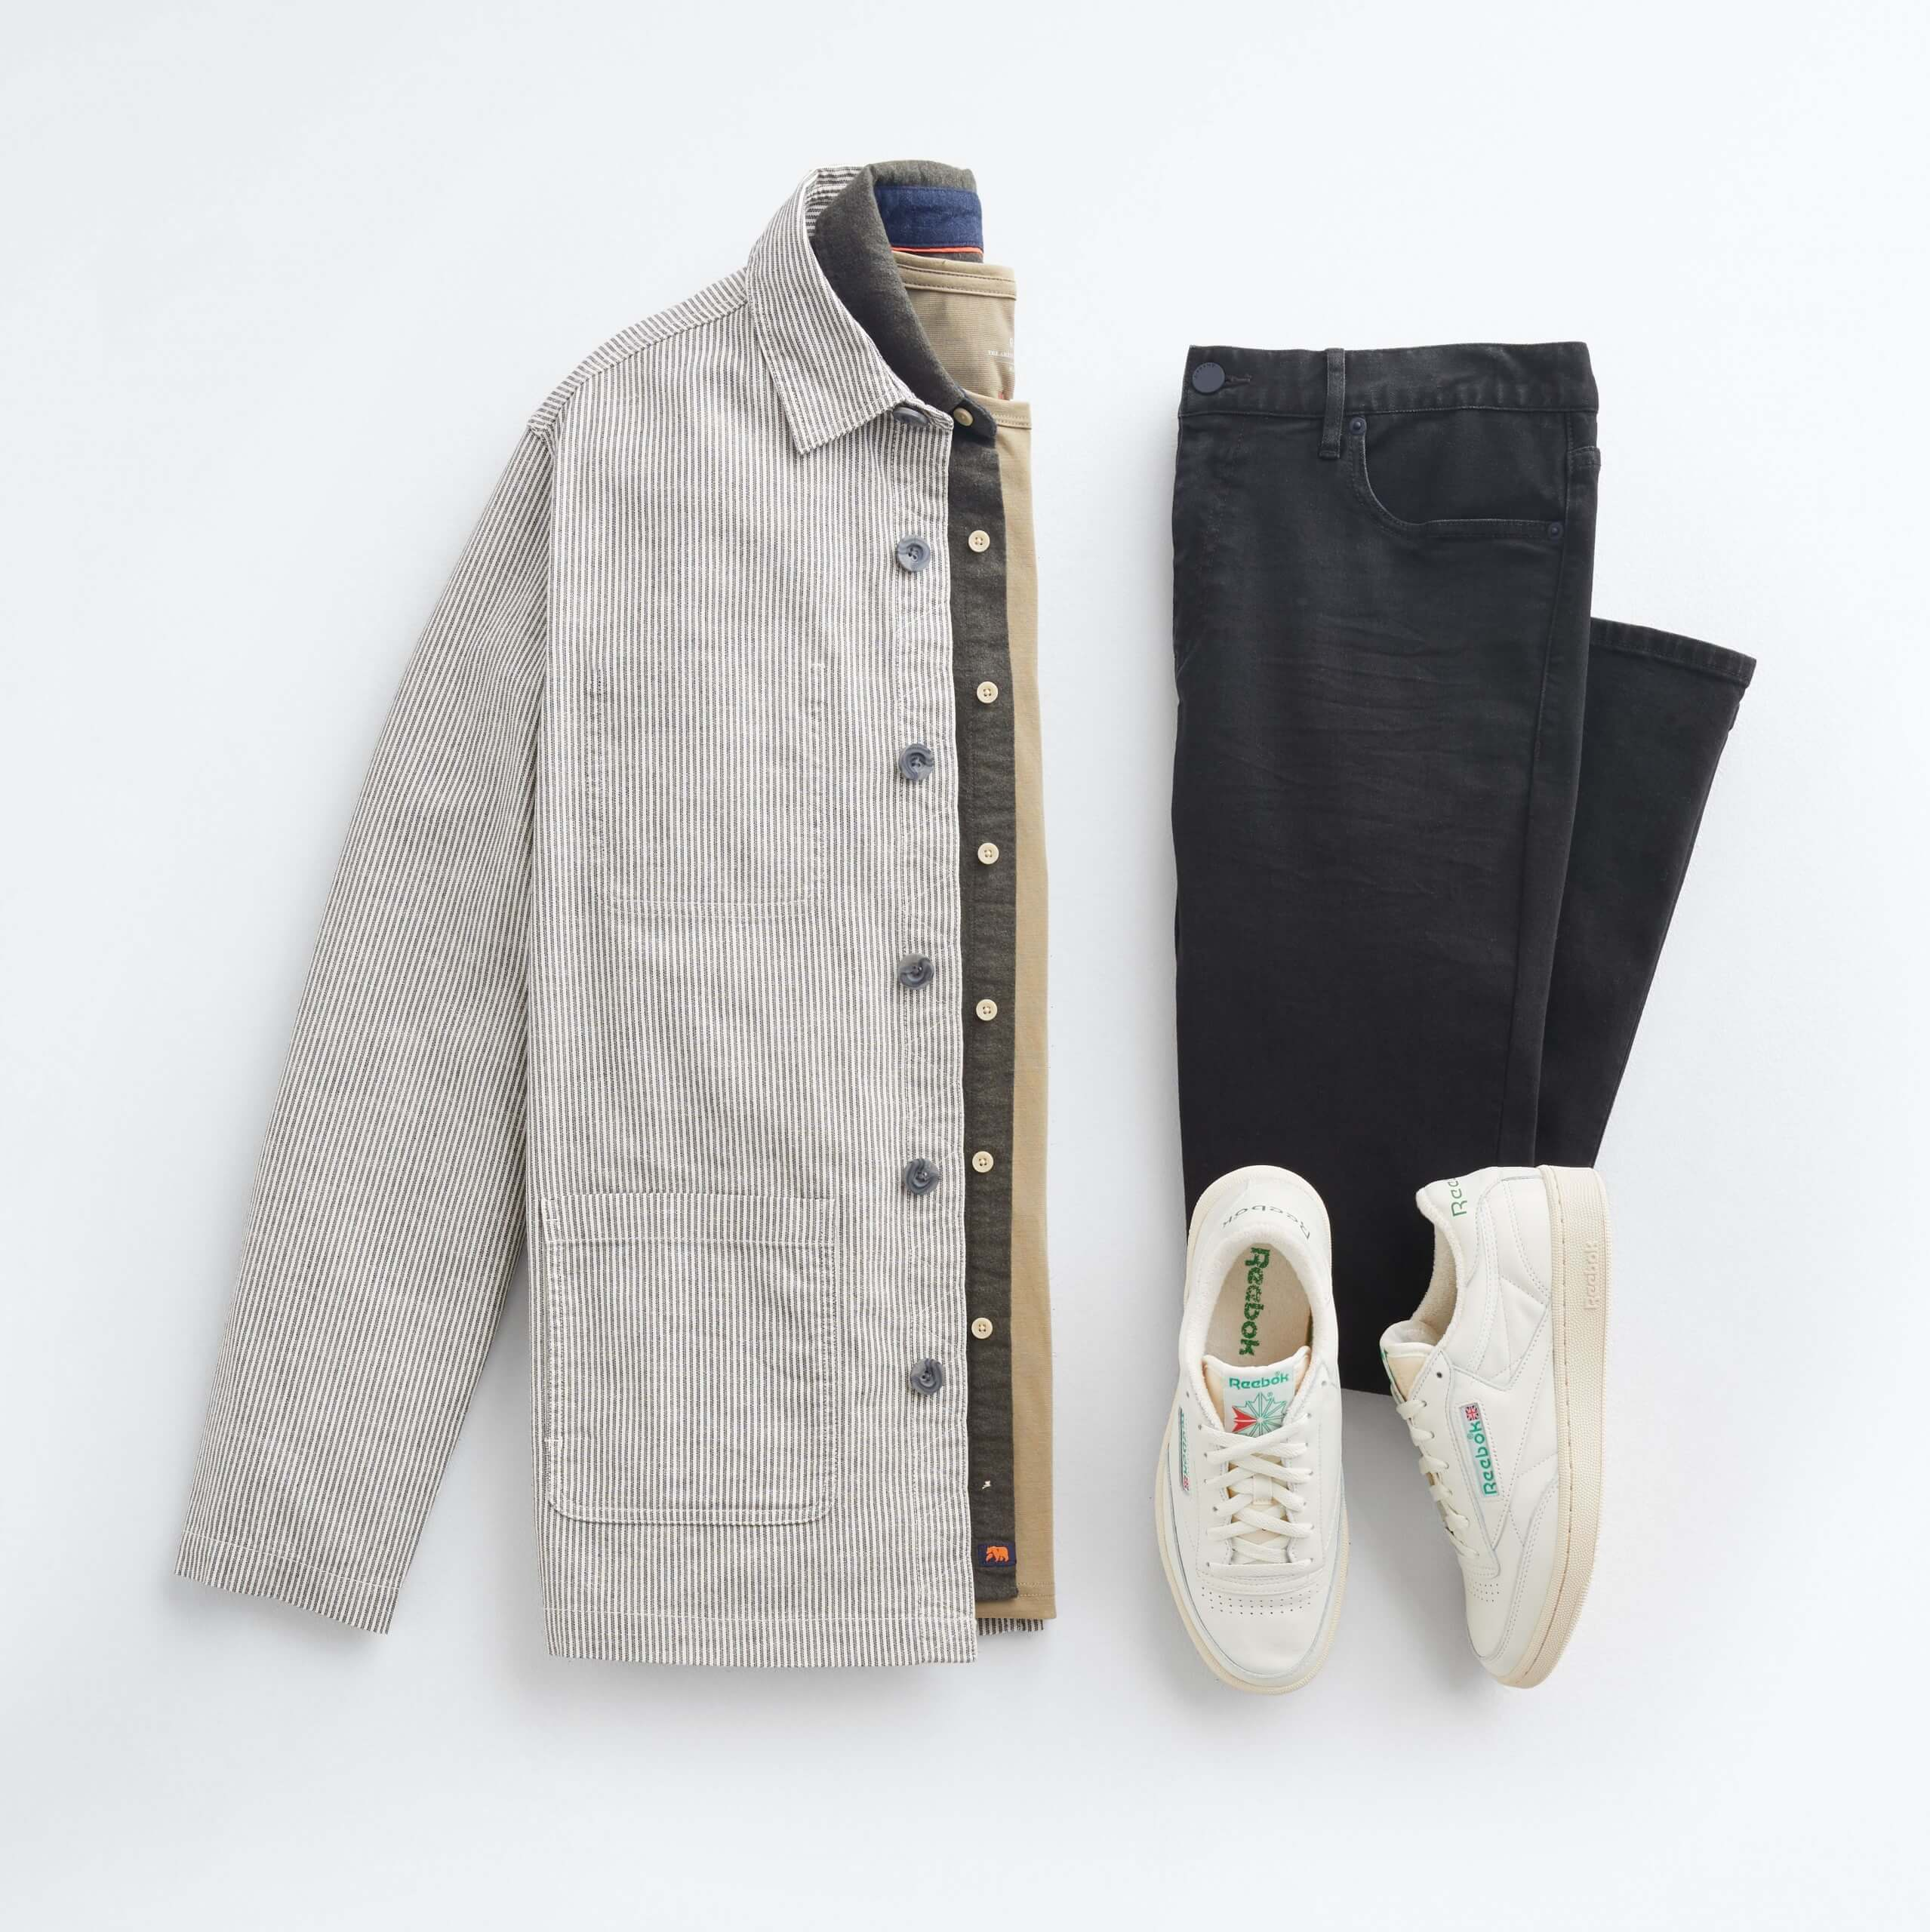 Stitch Fix Men's outfit laydown featuring beige chore jacket over green oxford shirt and olive crewneck t-shirt, next to black jeans and white sneakers.